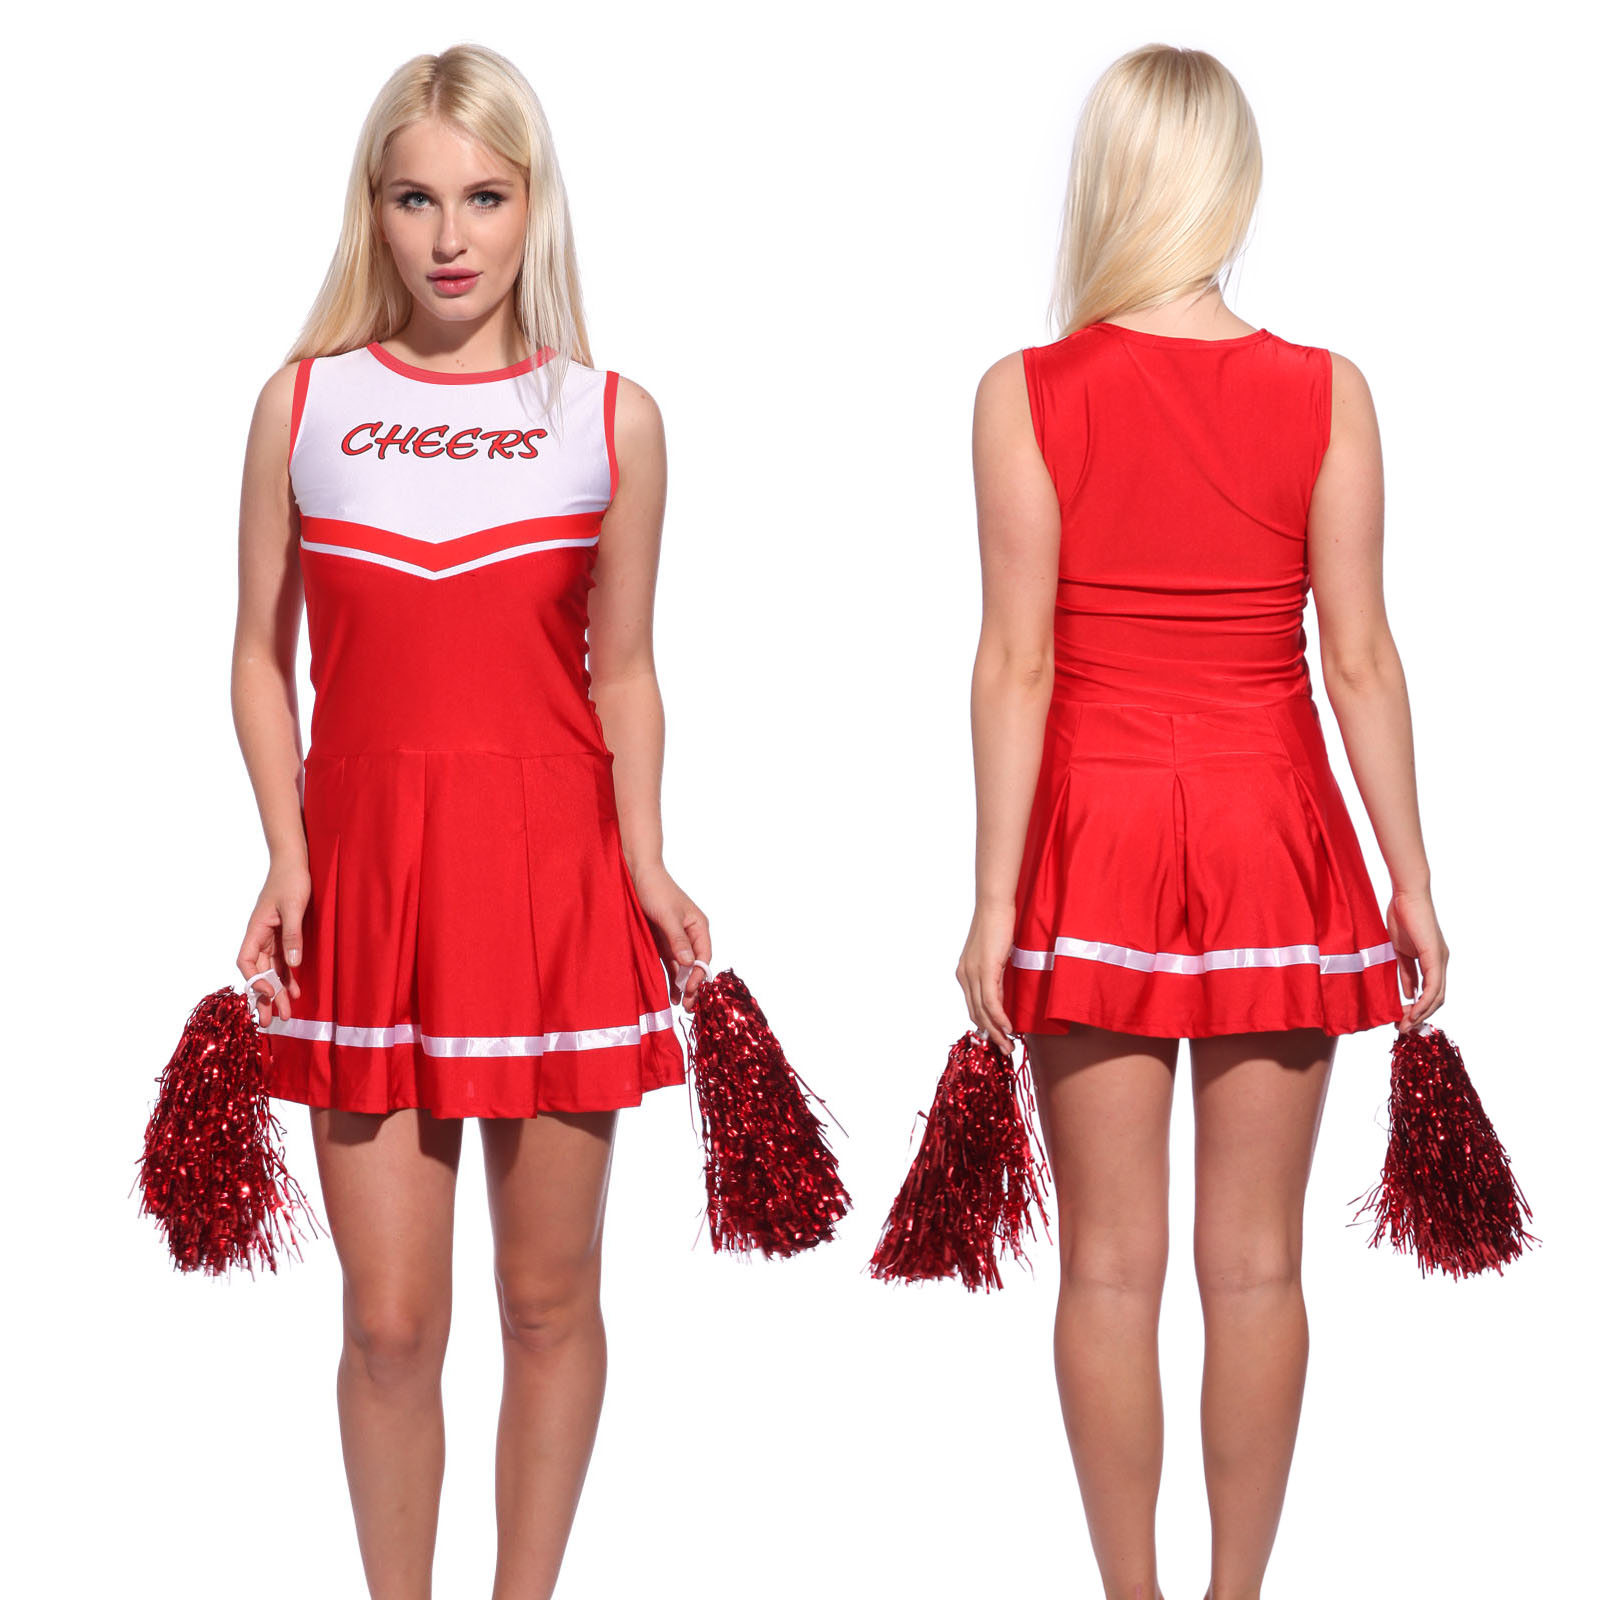 Ladies High School Cheer Girl Cheerleading Costume Fancy Dress Outfit with Poms | eBay